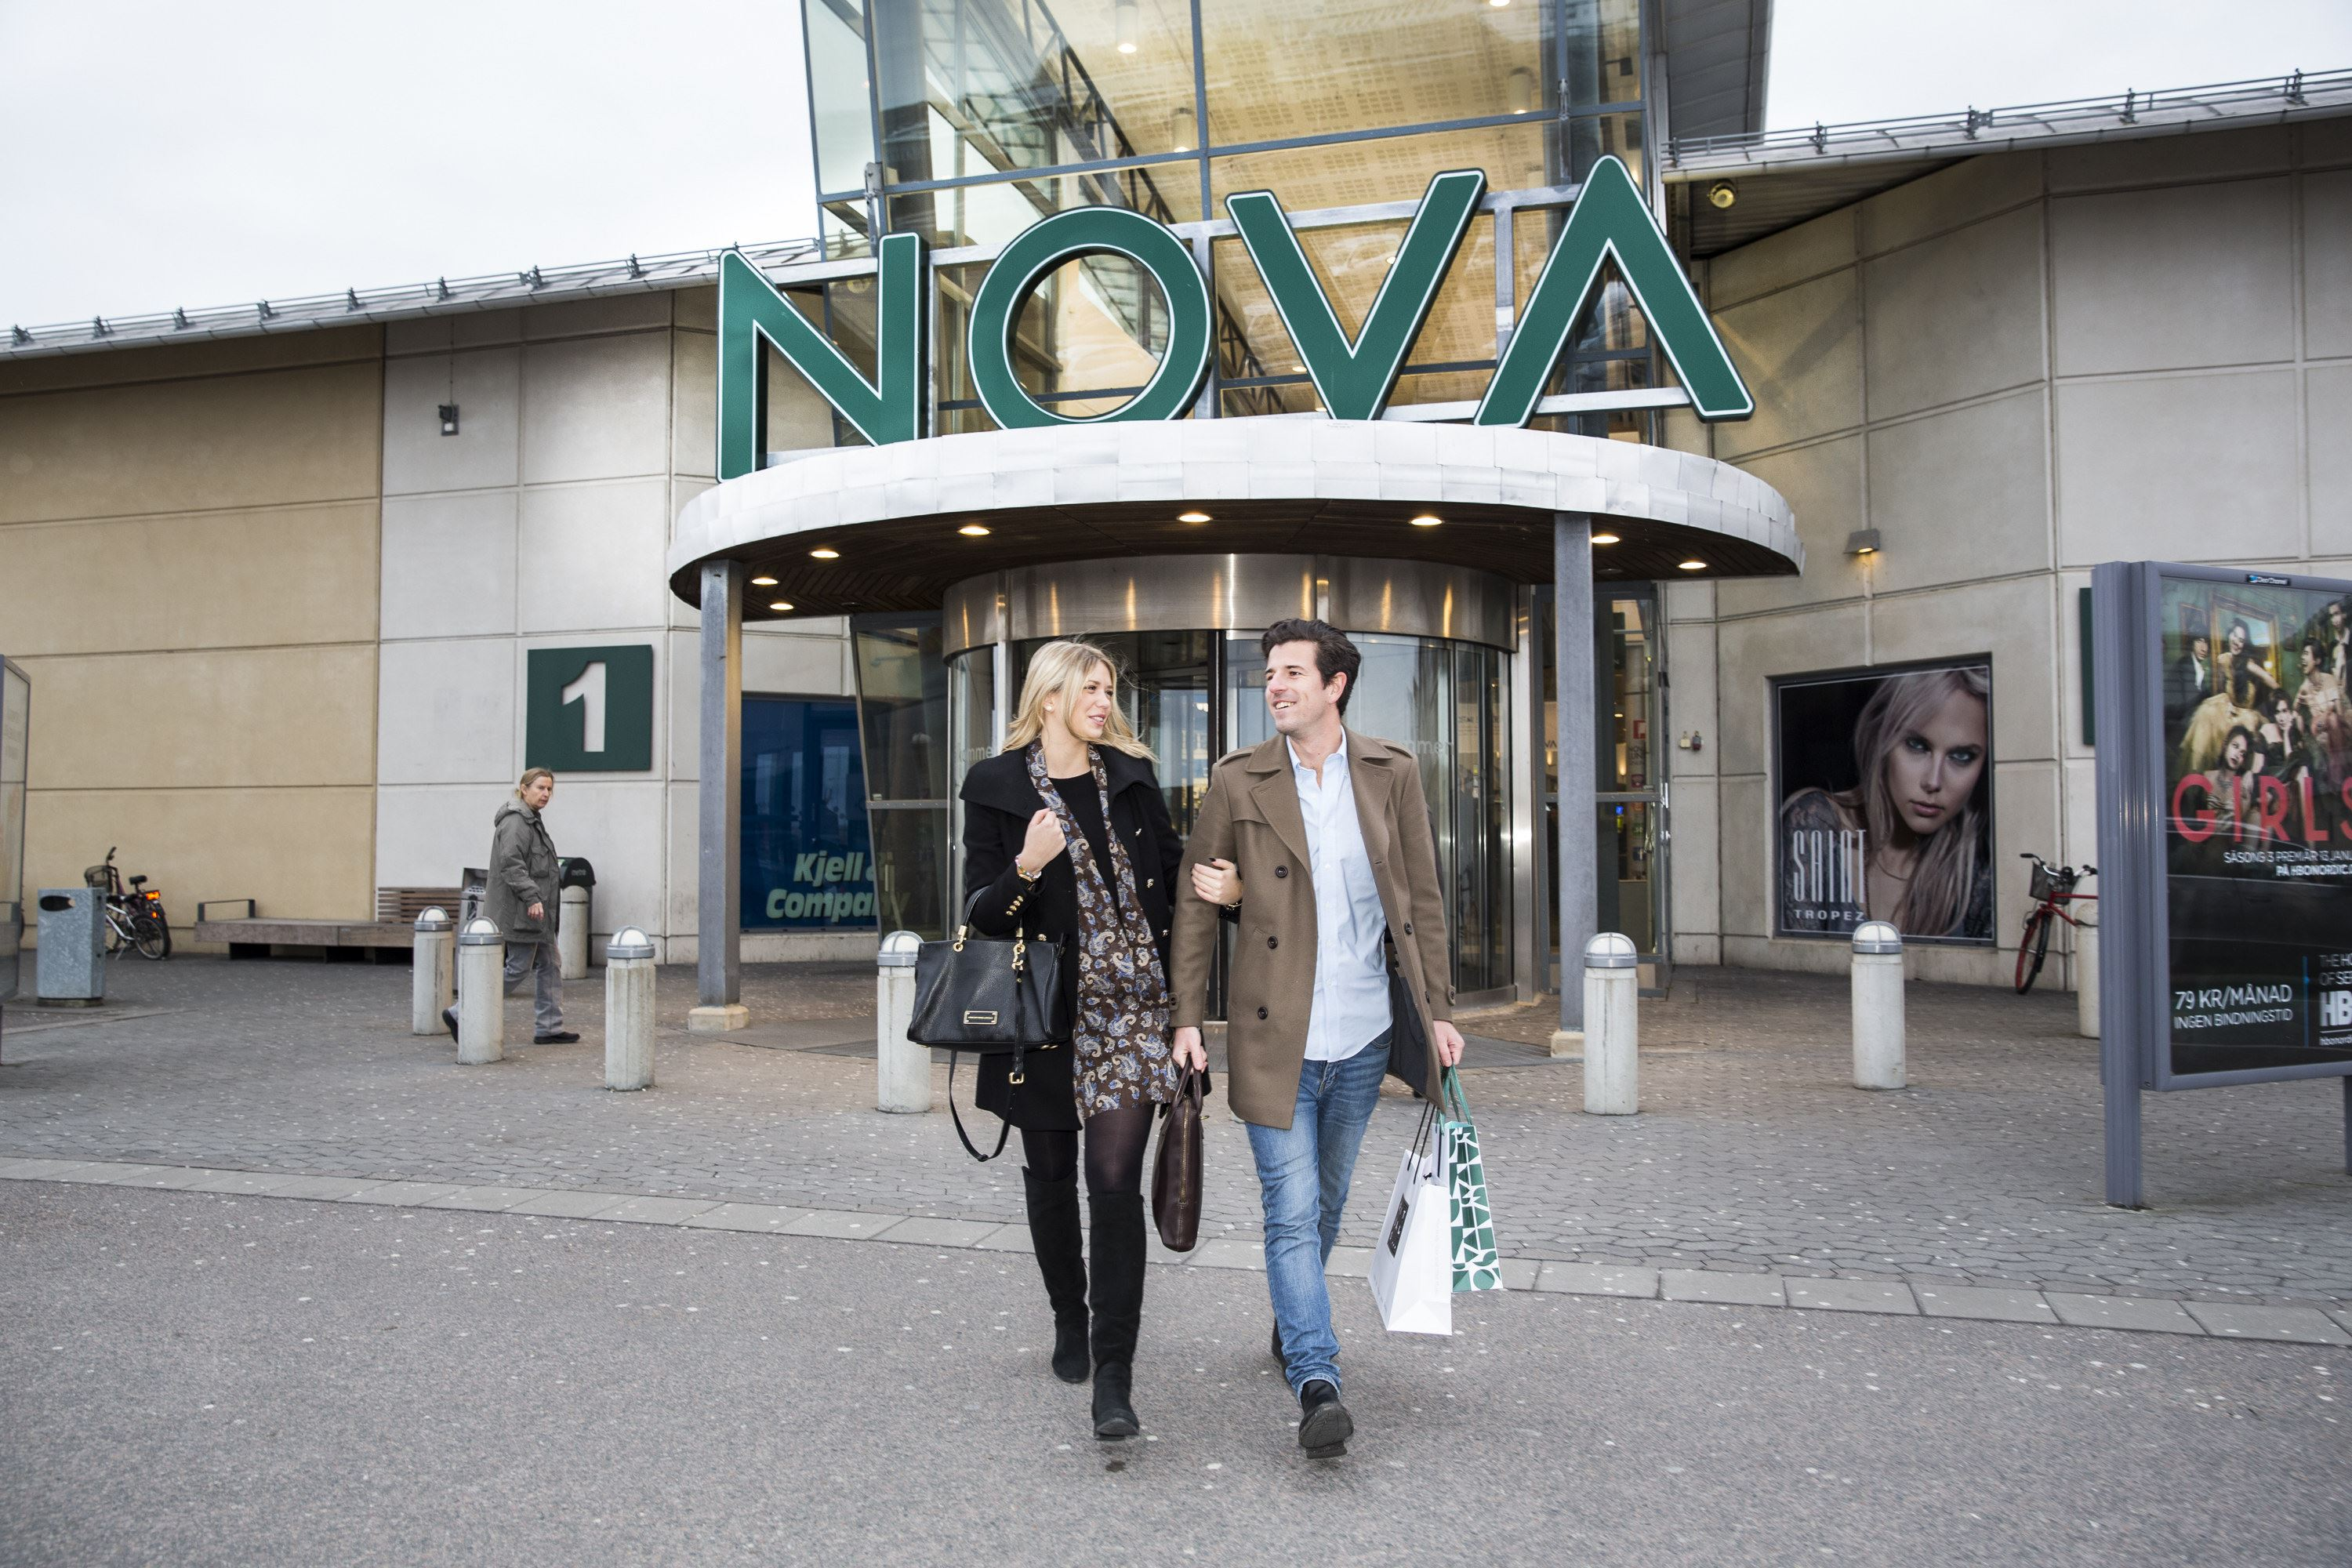 © Nova Lund, Nova Lund shopping centre